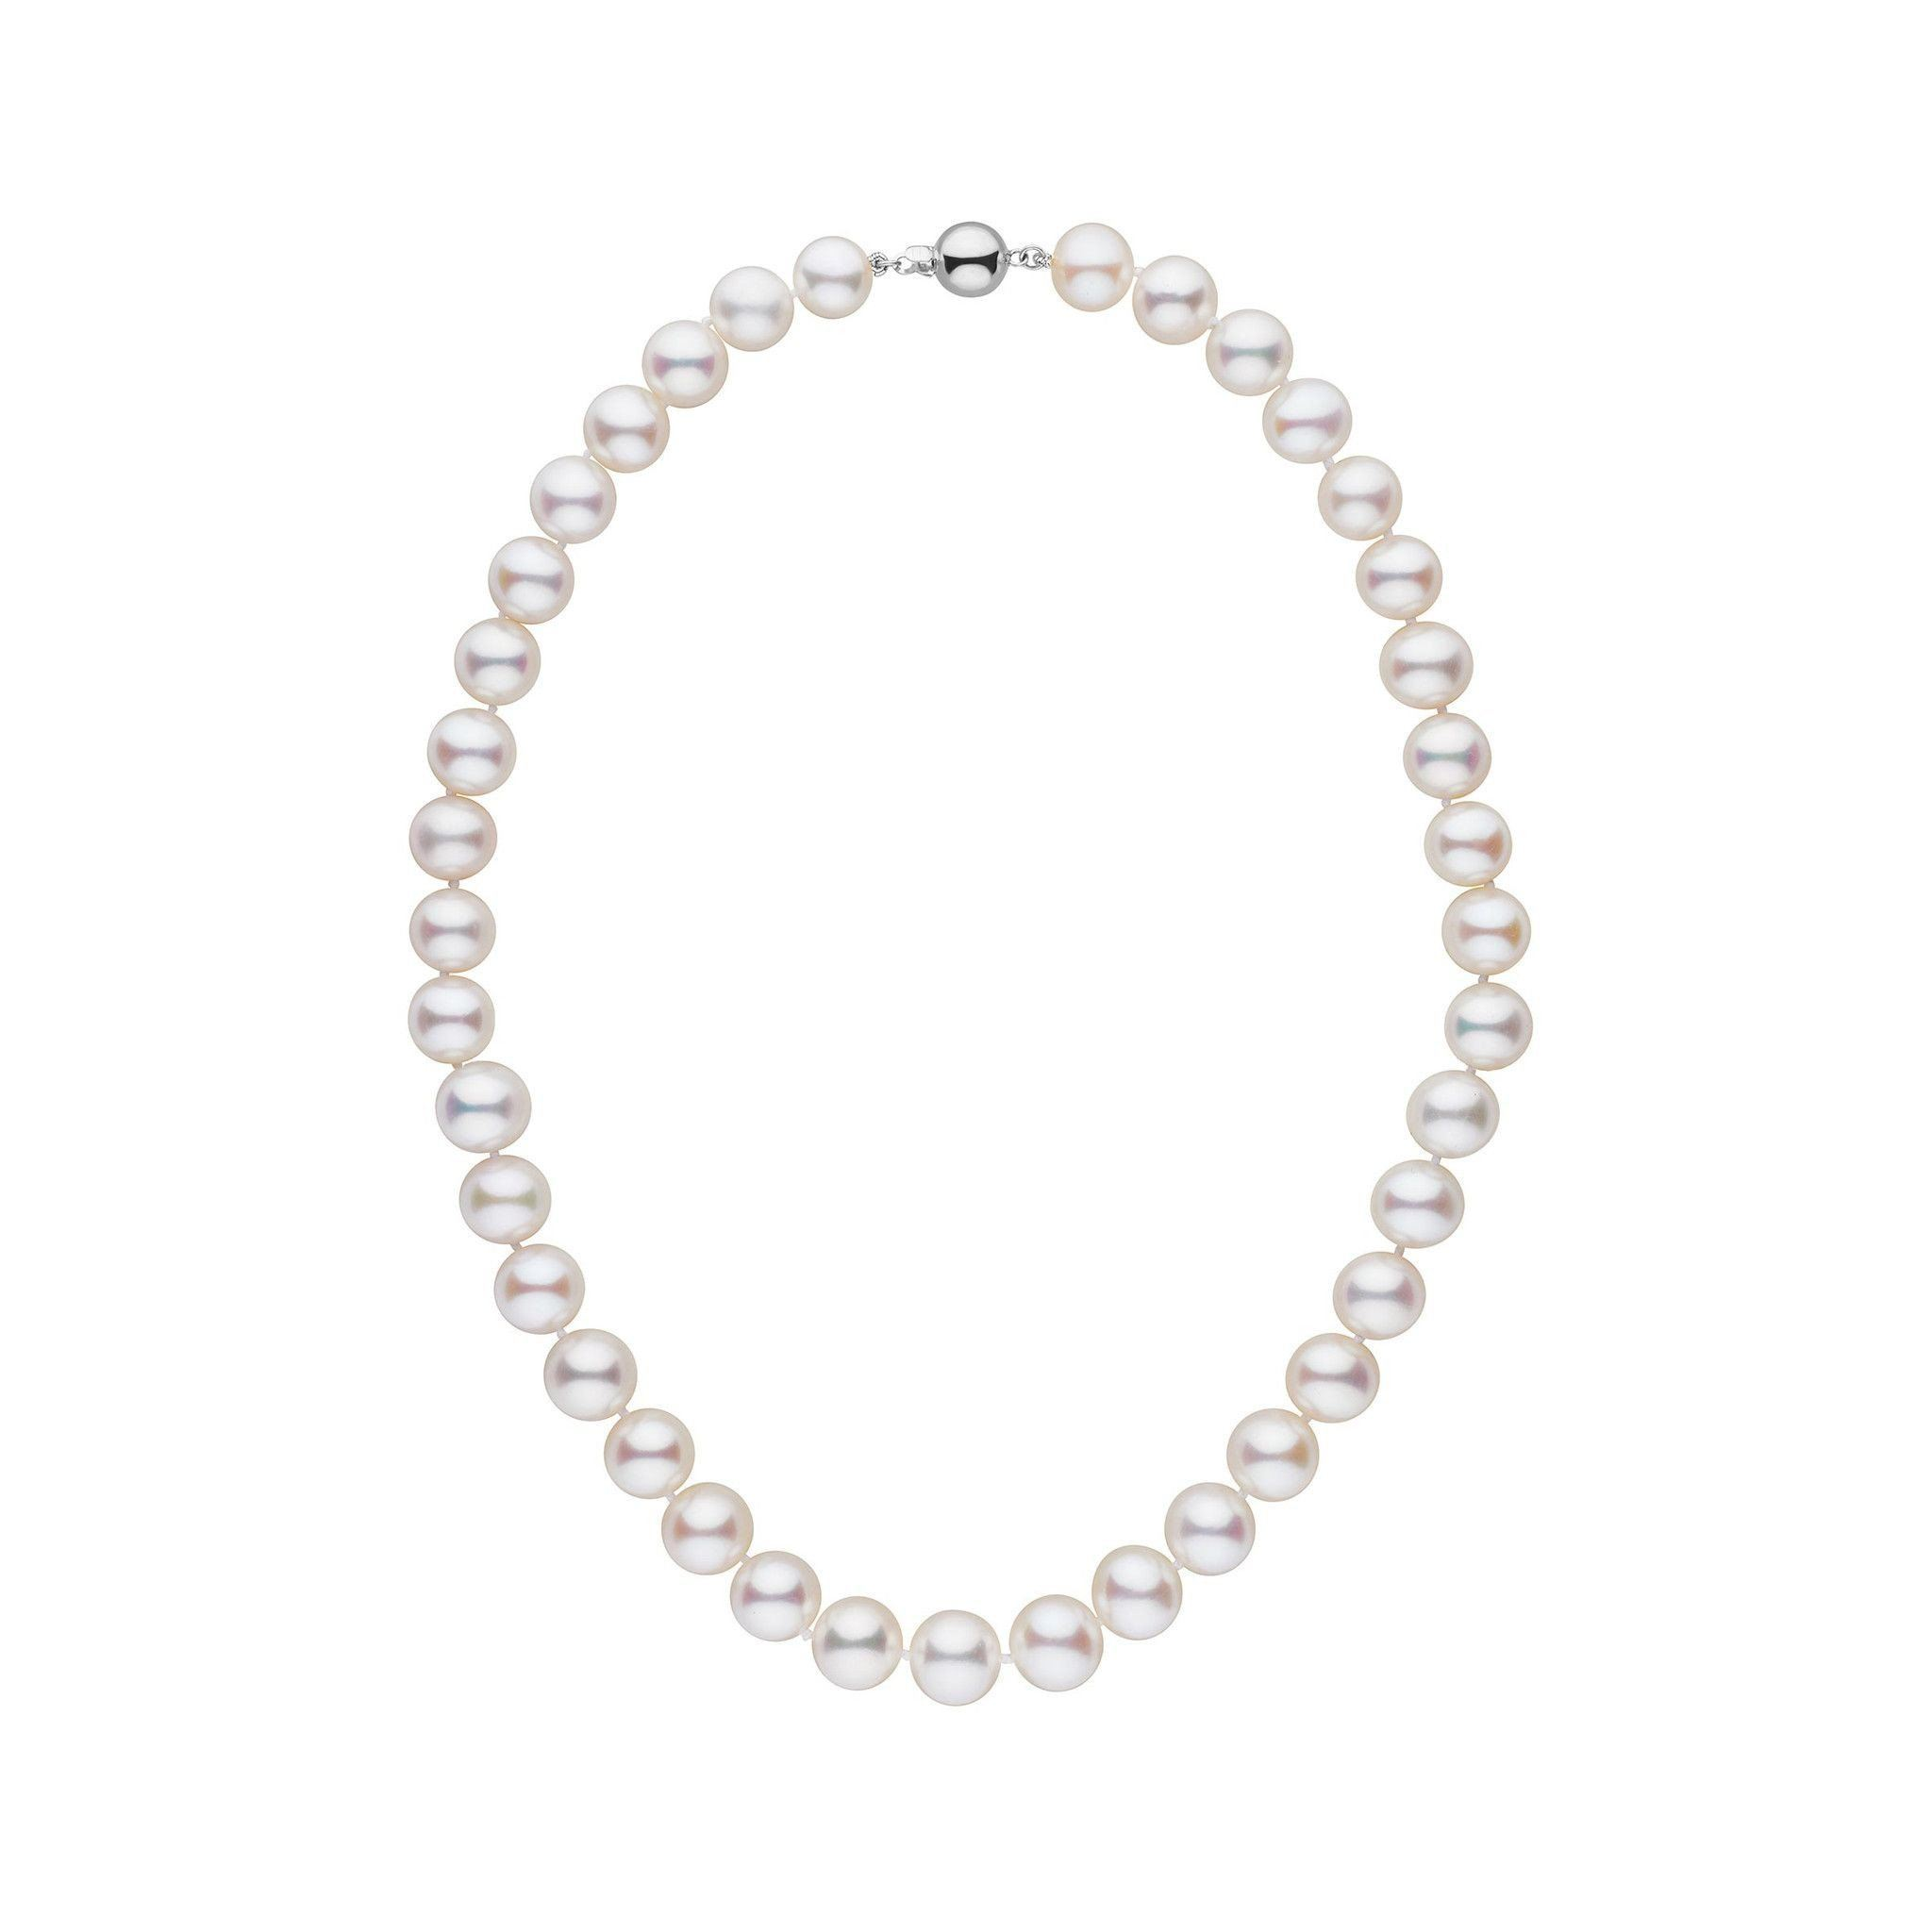 9.5-10.5 mm 16 inch AAA White Freshwater Pearl Necklace